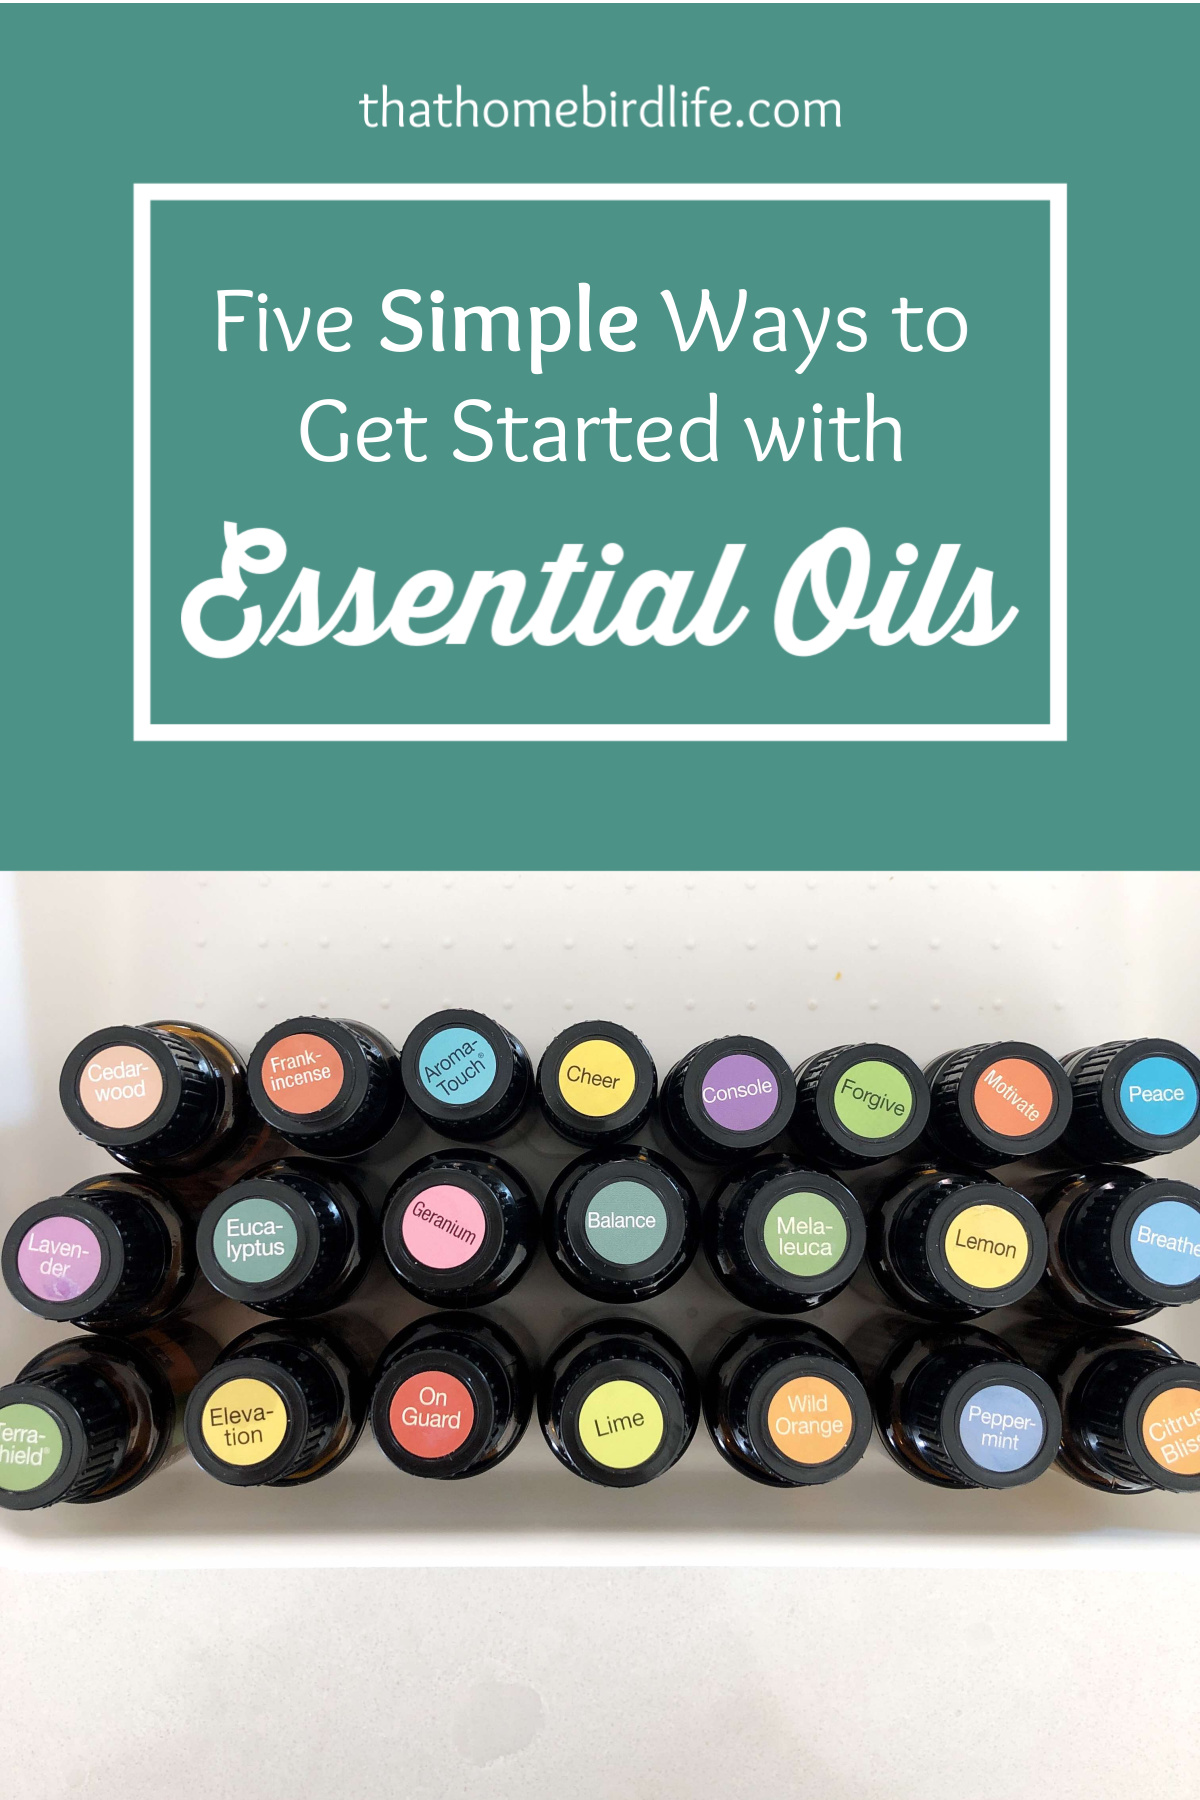 Beginner's Guide to Essential Oils | Five Simple Ways to Get Started with Essential Oils | That Homebird Life Blog | #essentialoils #essentialoilsforbeginners #doterra